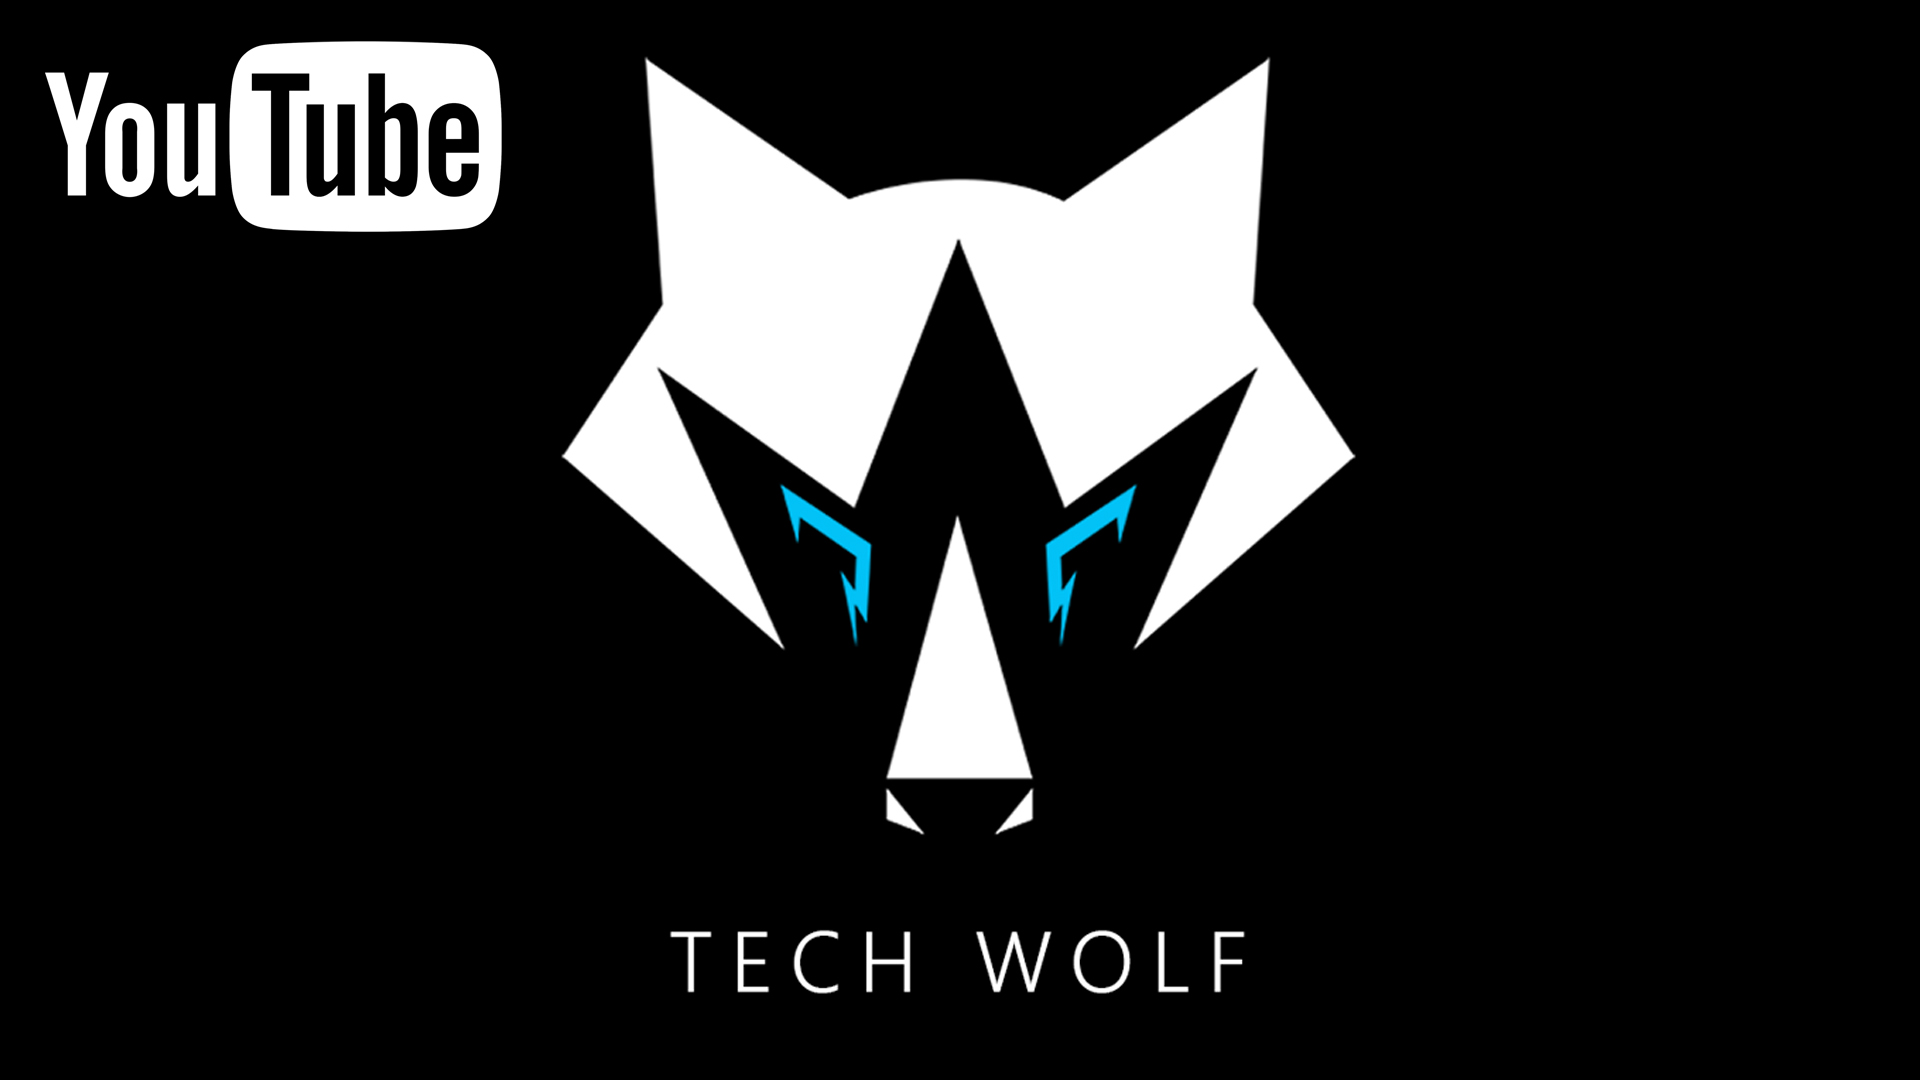 I will give you a shout out on my youtube TECH WOLF